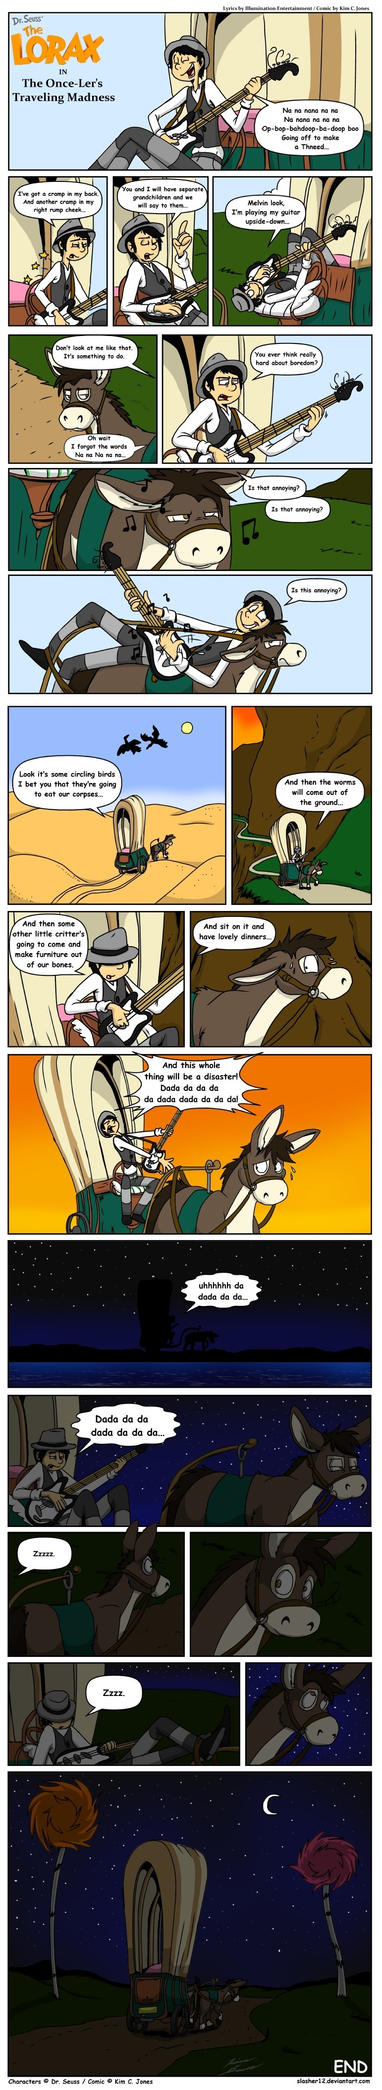 Once-ler's Traveling Madness Comic by Slasher12